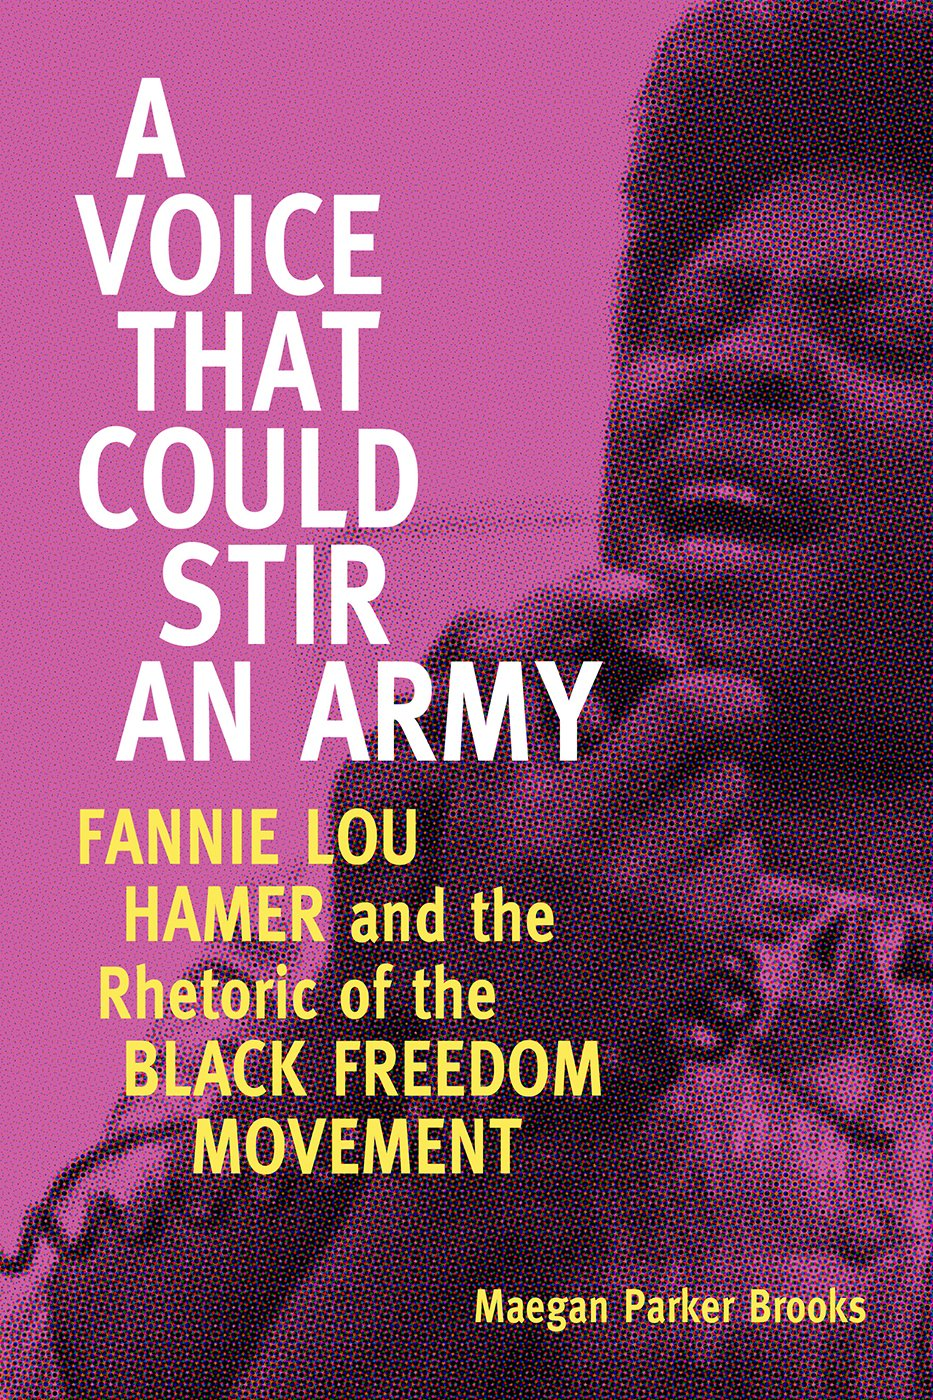 a-voice-that-could-stir-an-army-fannie-lou-hamer-and-the-rhetoric-of-the-black-freedom-movement-race-rhetoric-and-media-series